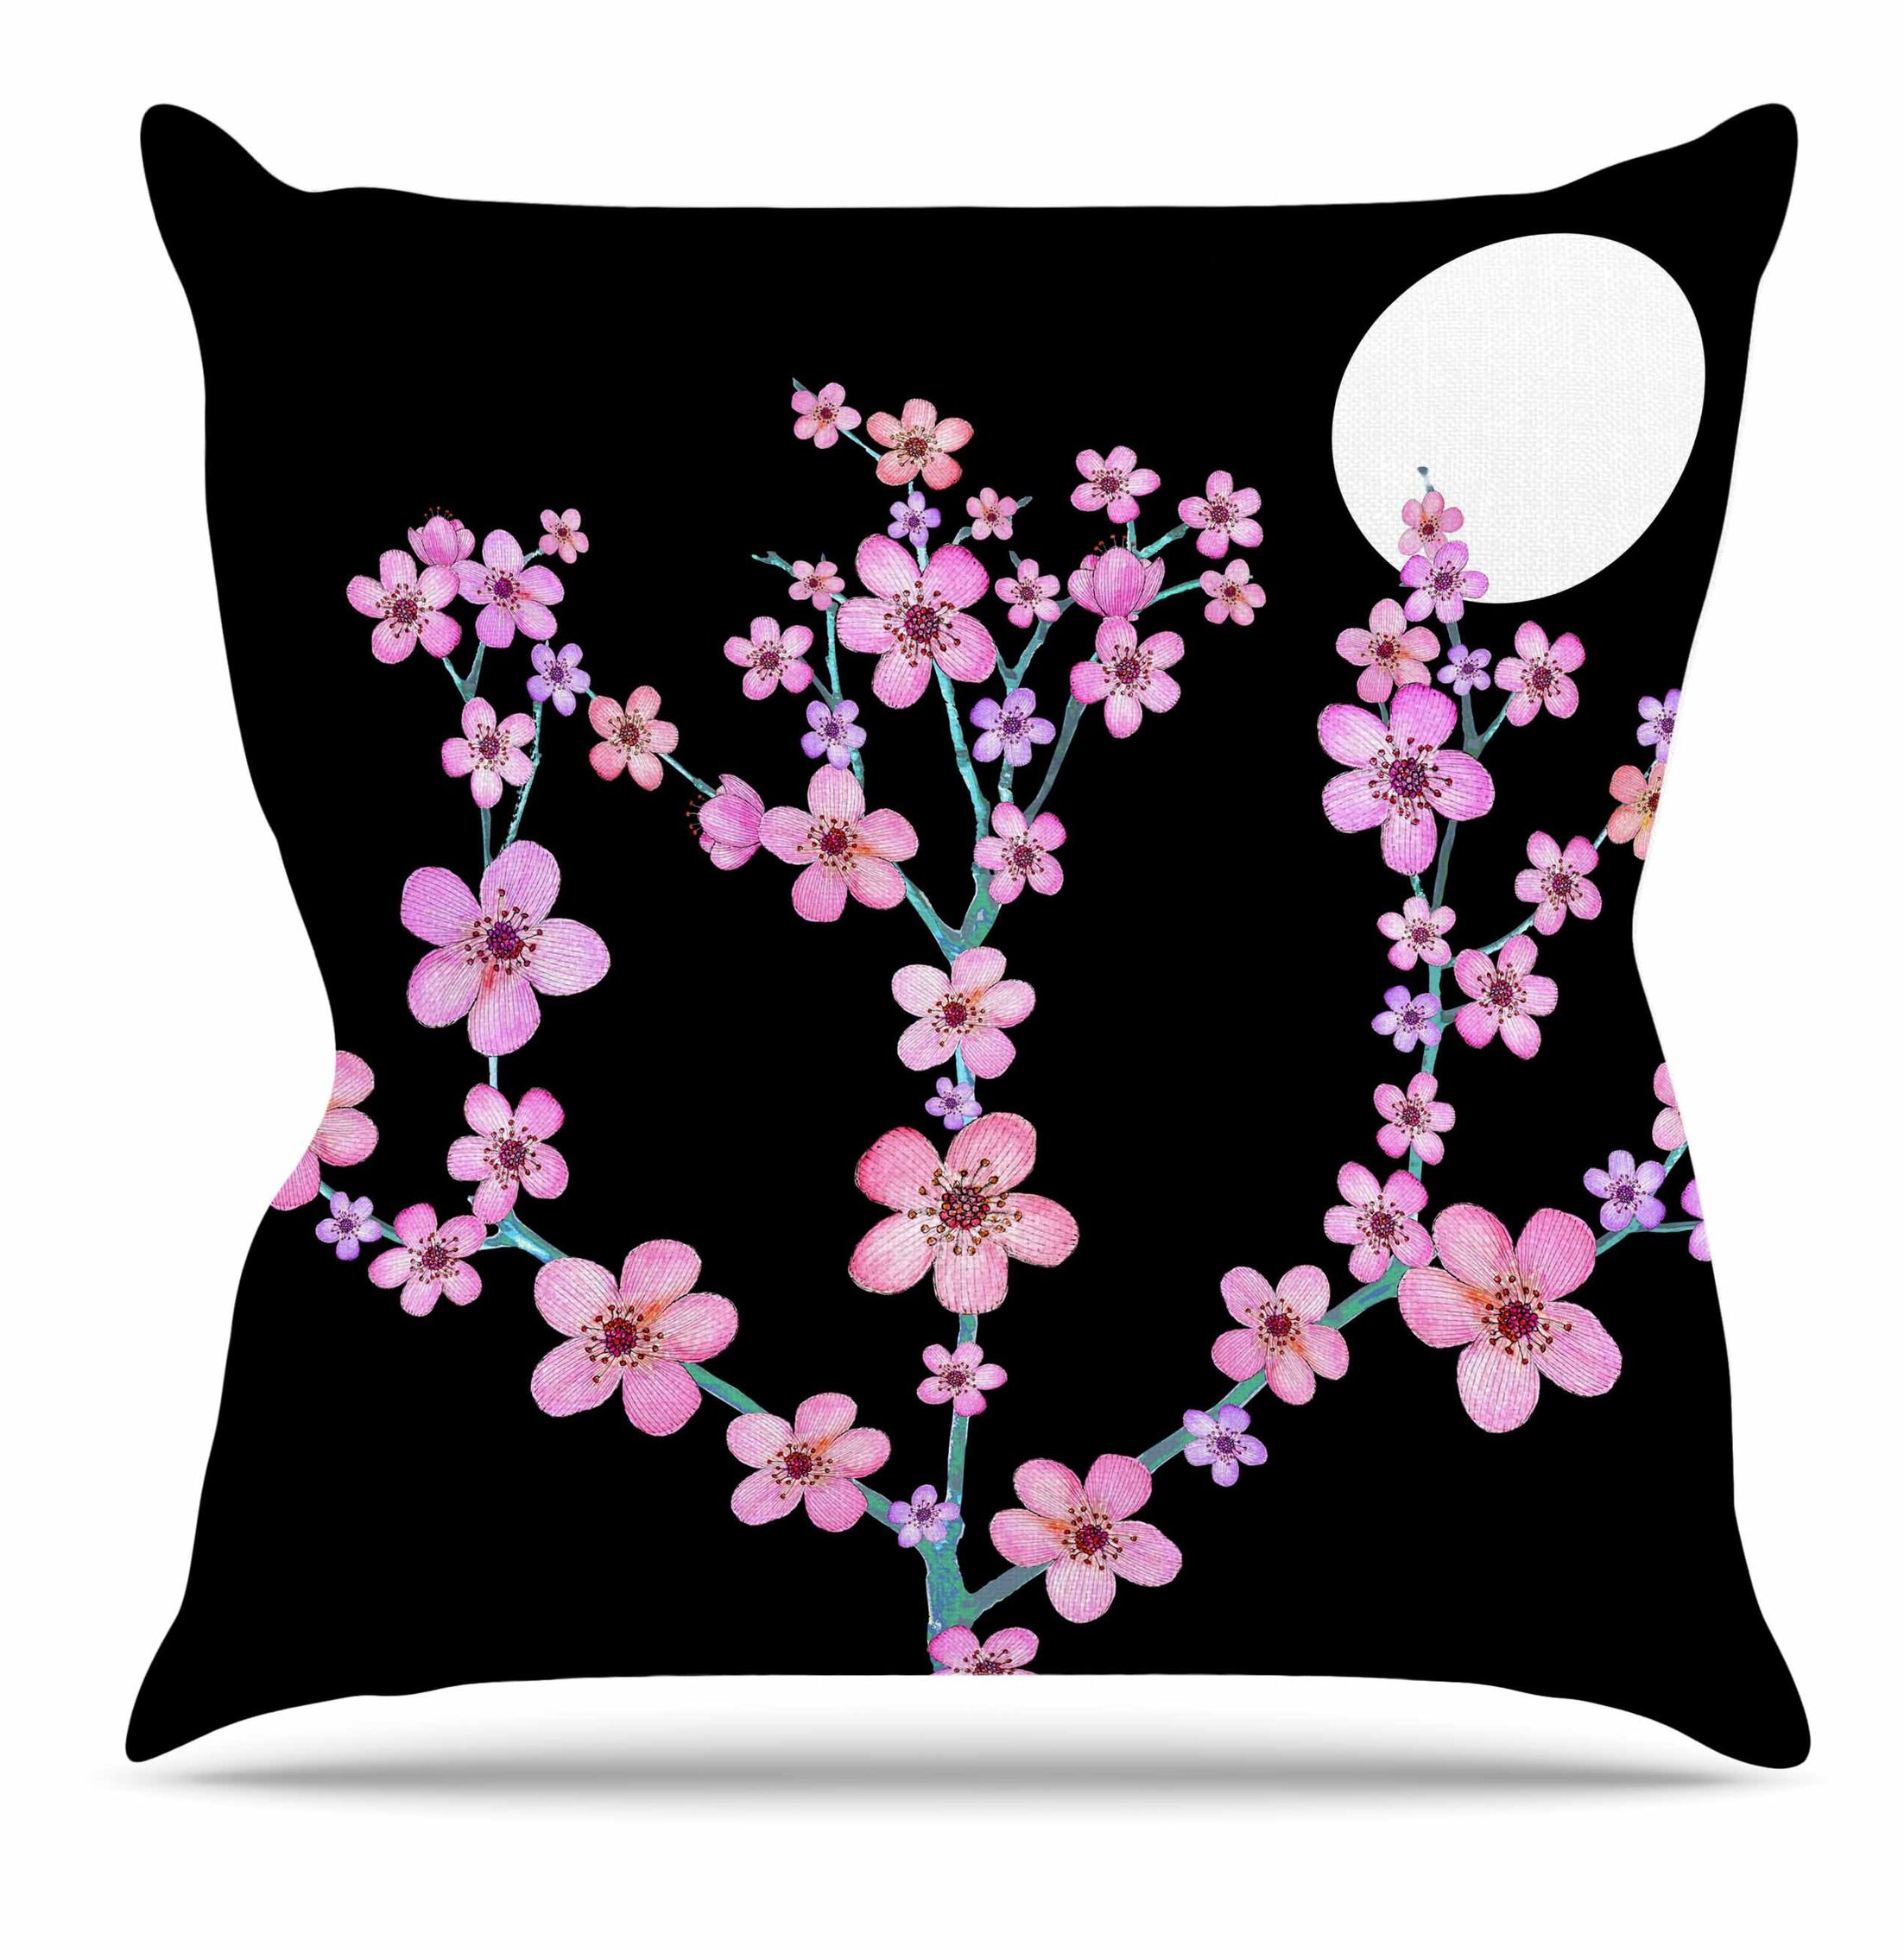 Cherry Blossom at Night Throw Pillow Size: 18